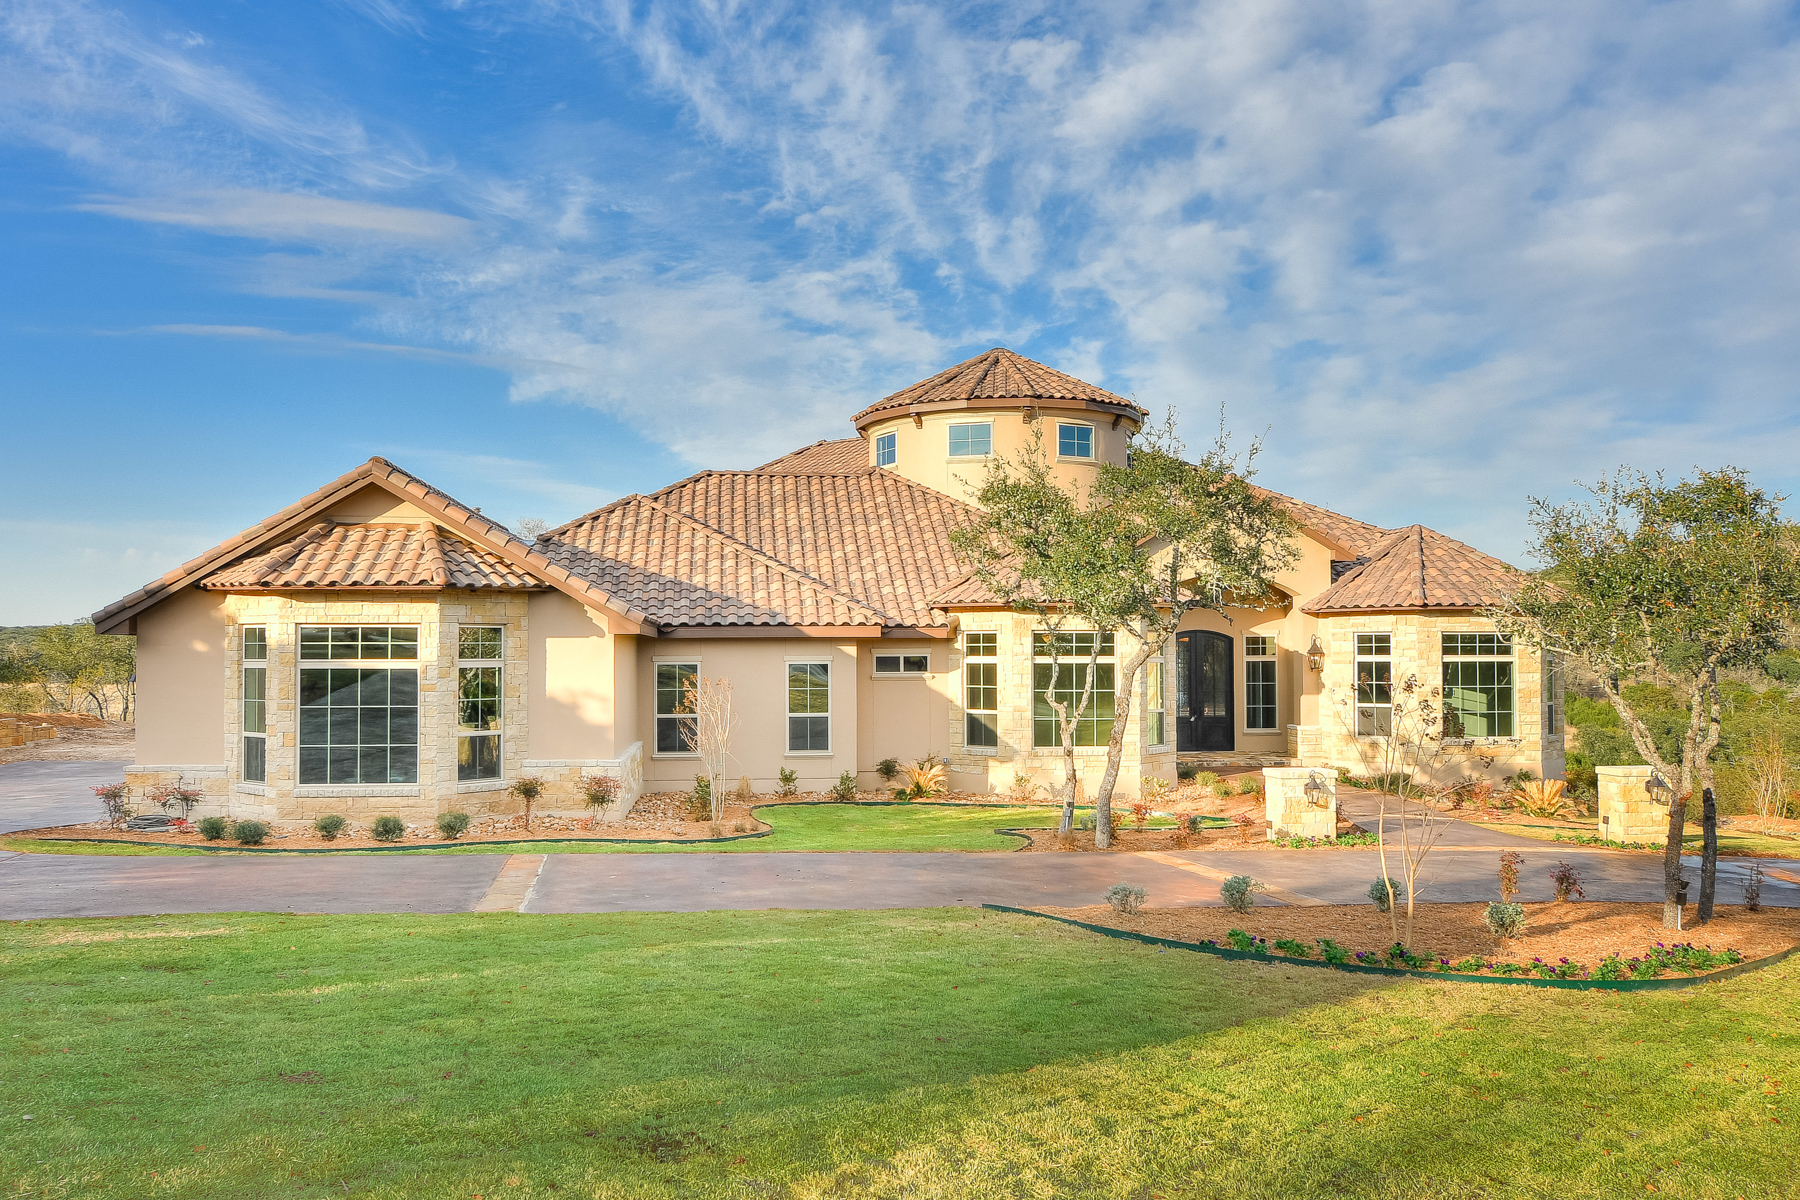 Single Family Home for Sale at Meticulously Built Home in Anaqua Aprings Ranch 24927 Caliza Terr Boerne, Texas 78006 United States